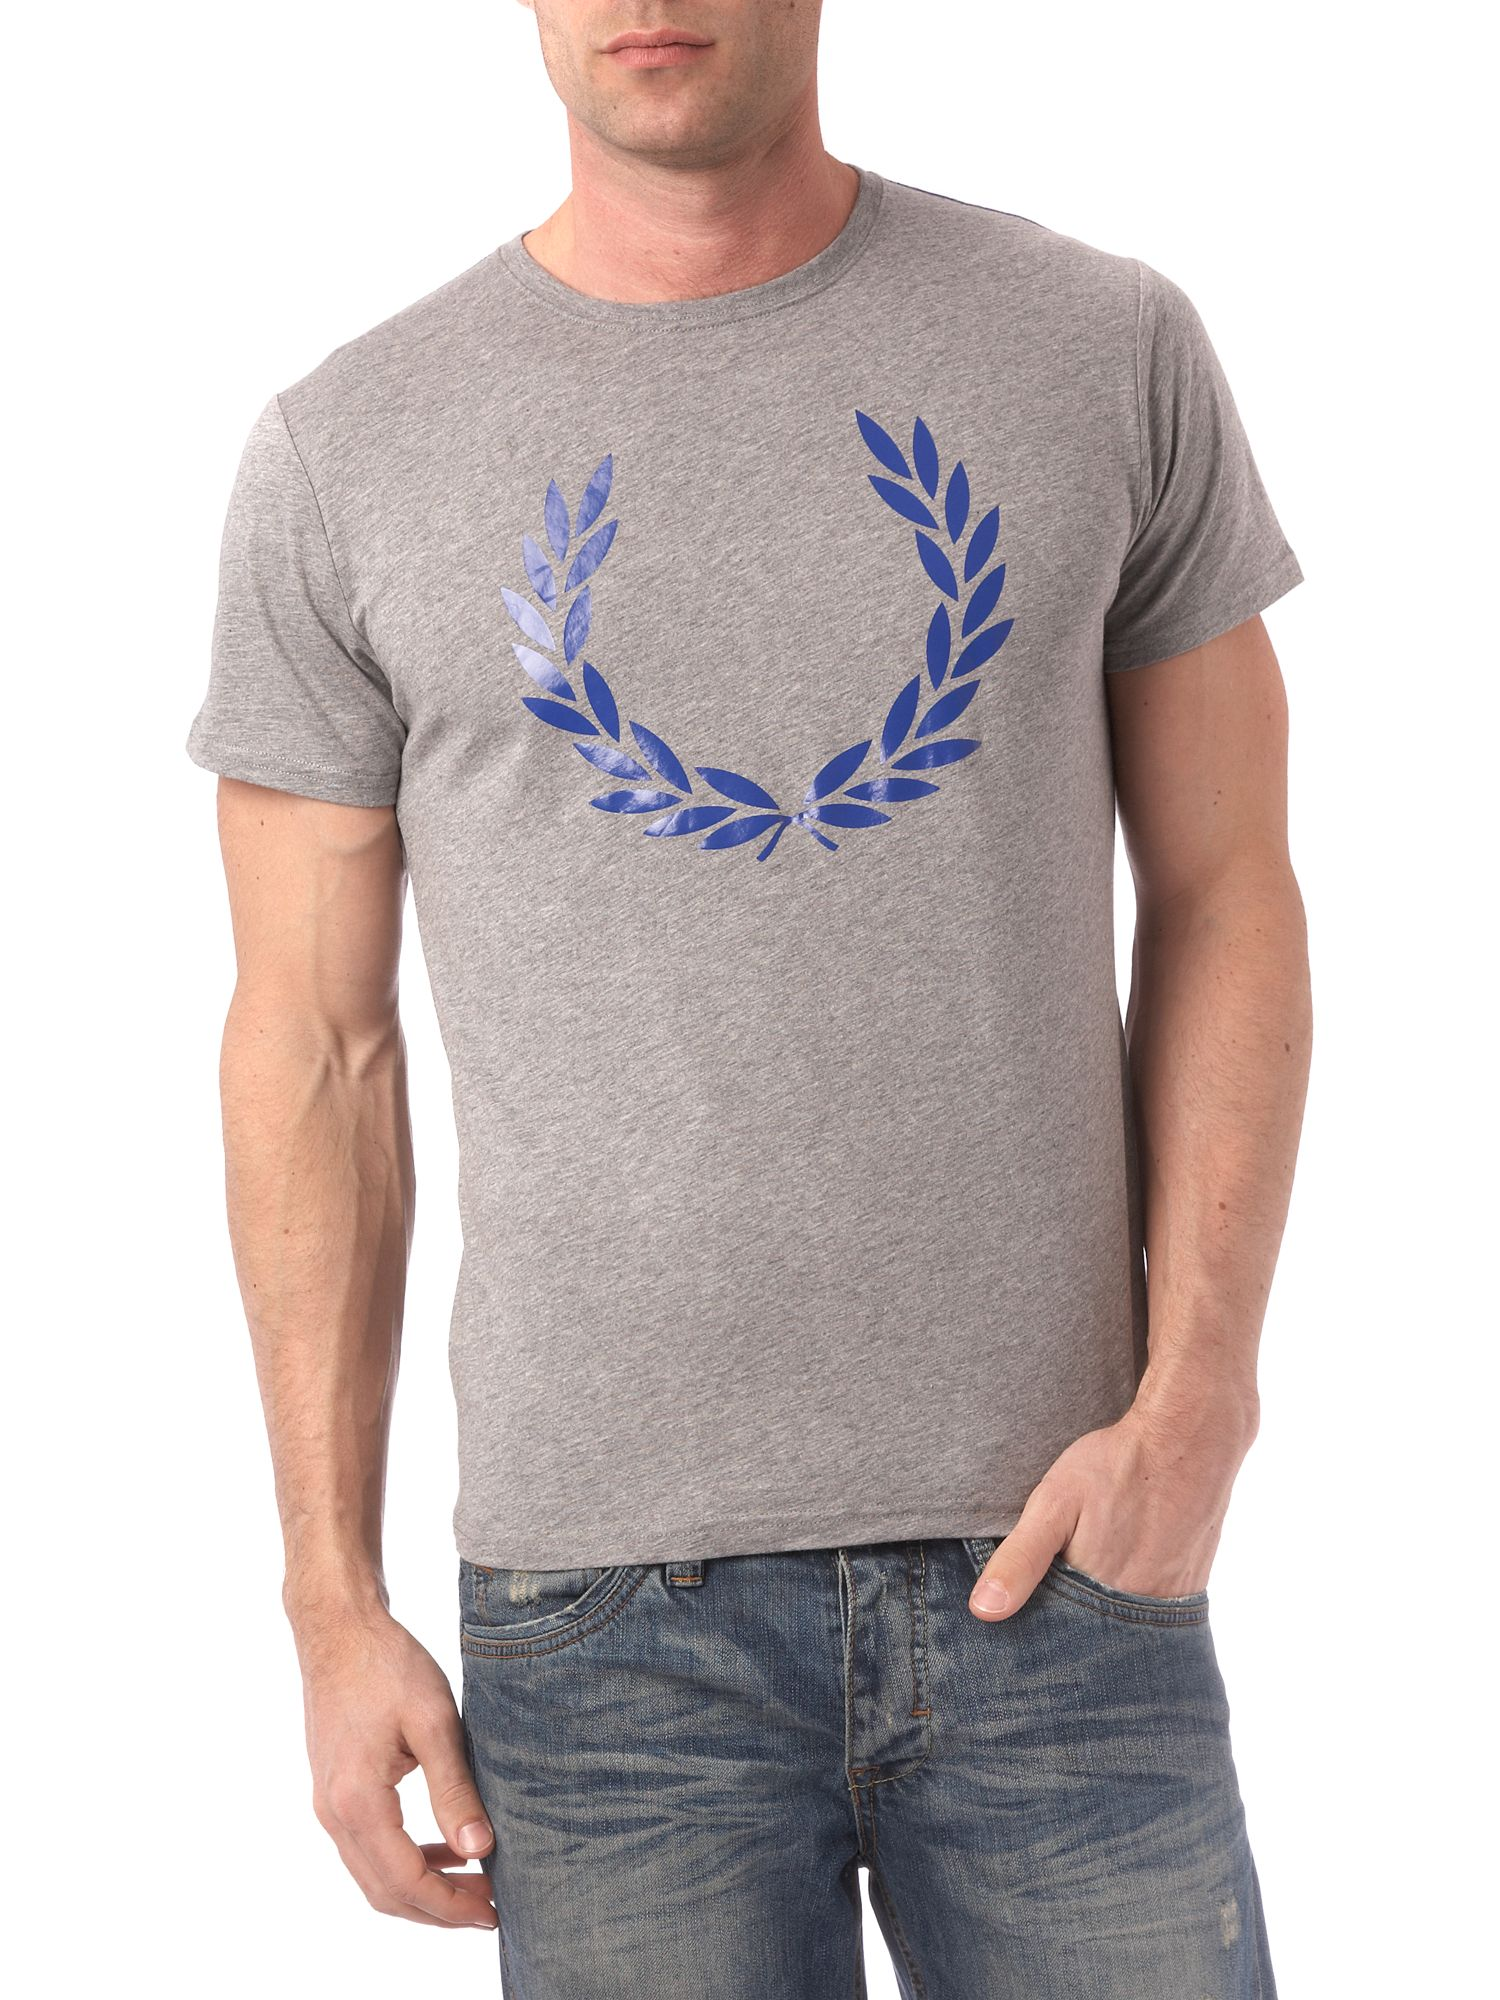 Fred Perry Laurel logo printed crew neck T-shirt product image